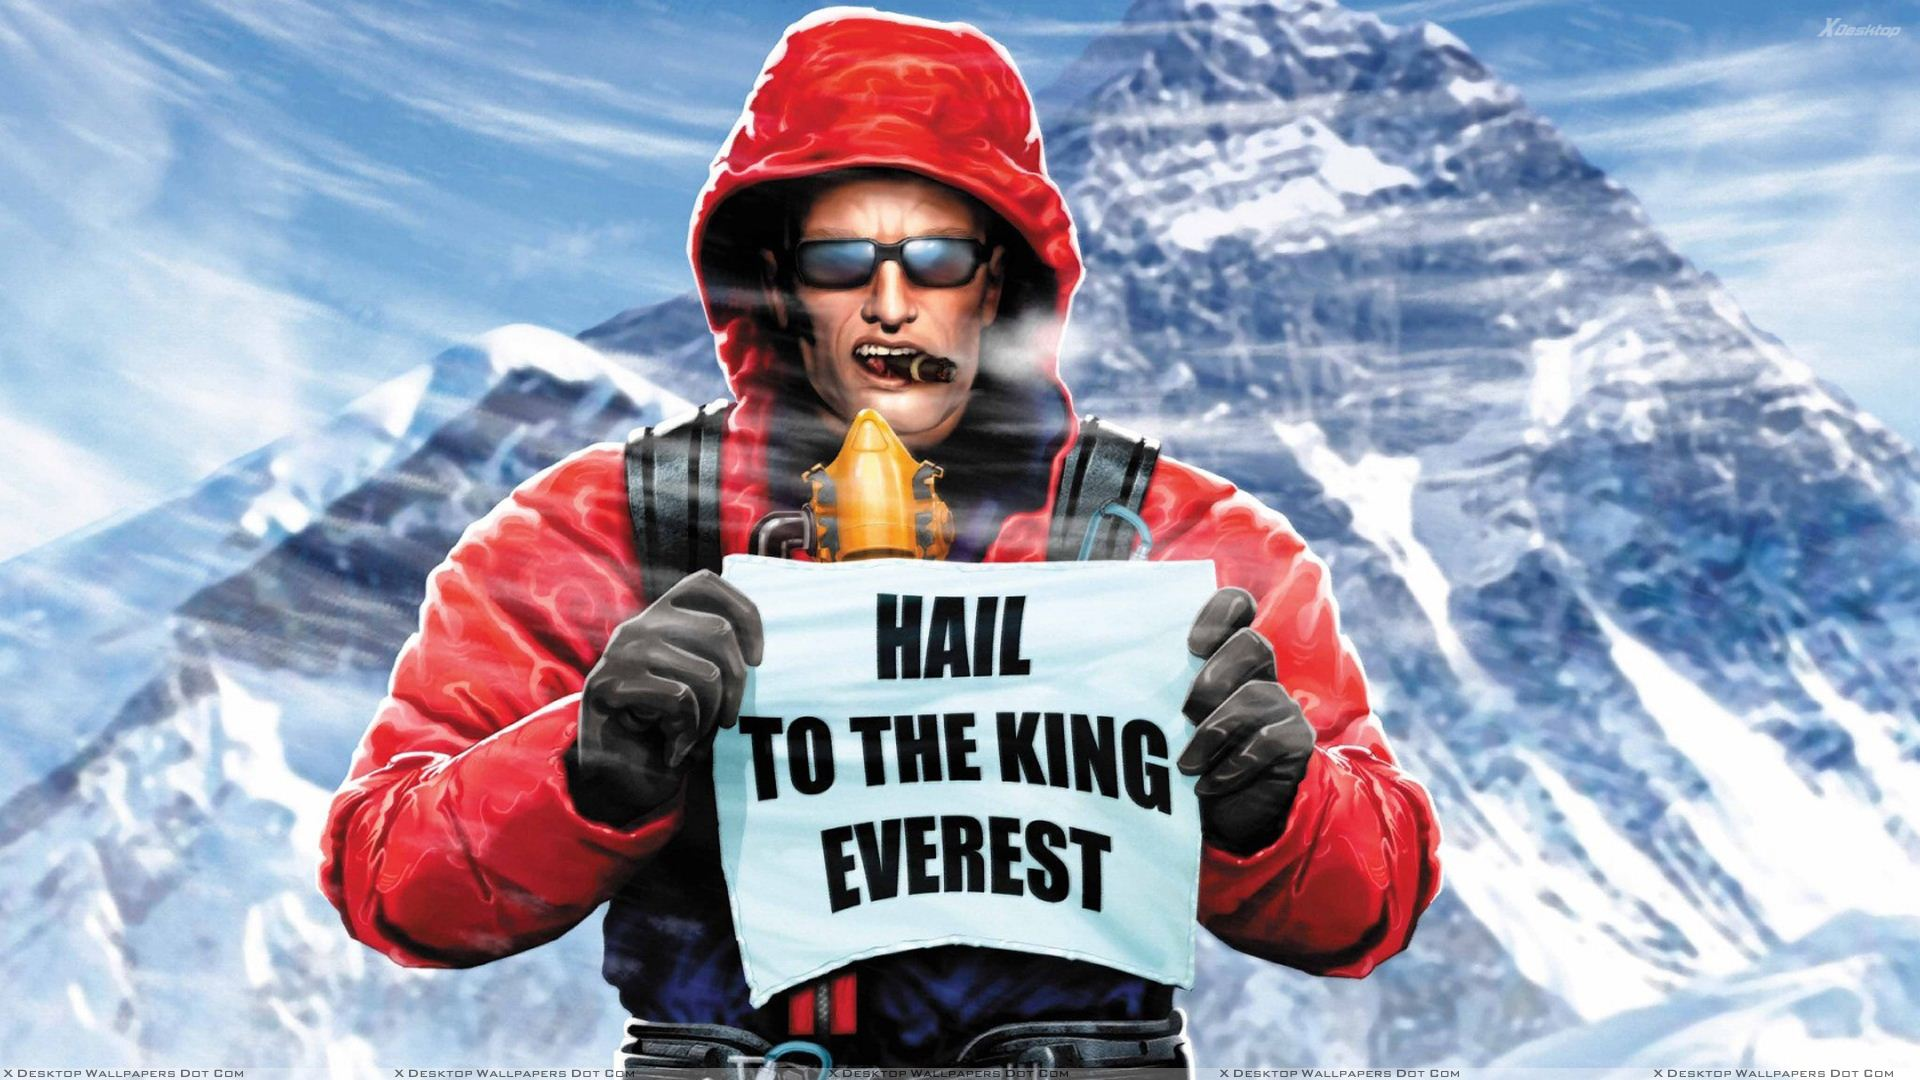 Duke nukem hail to the king everest wallpaper you are viewing wallpaper voltagebd Gallery